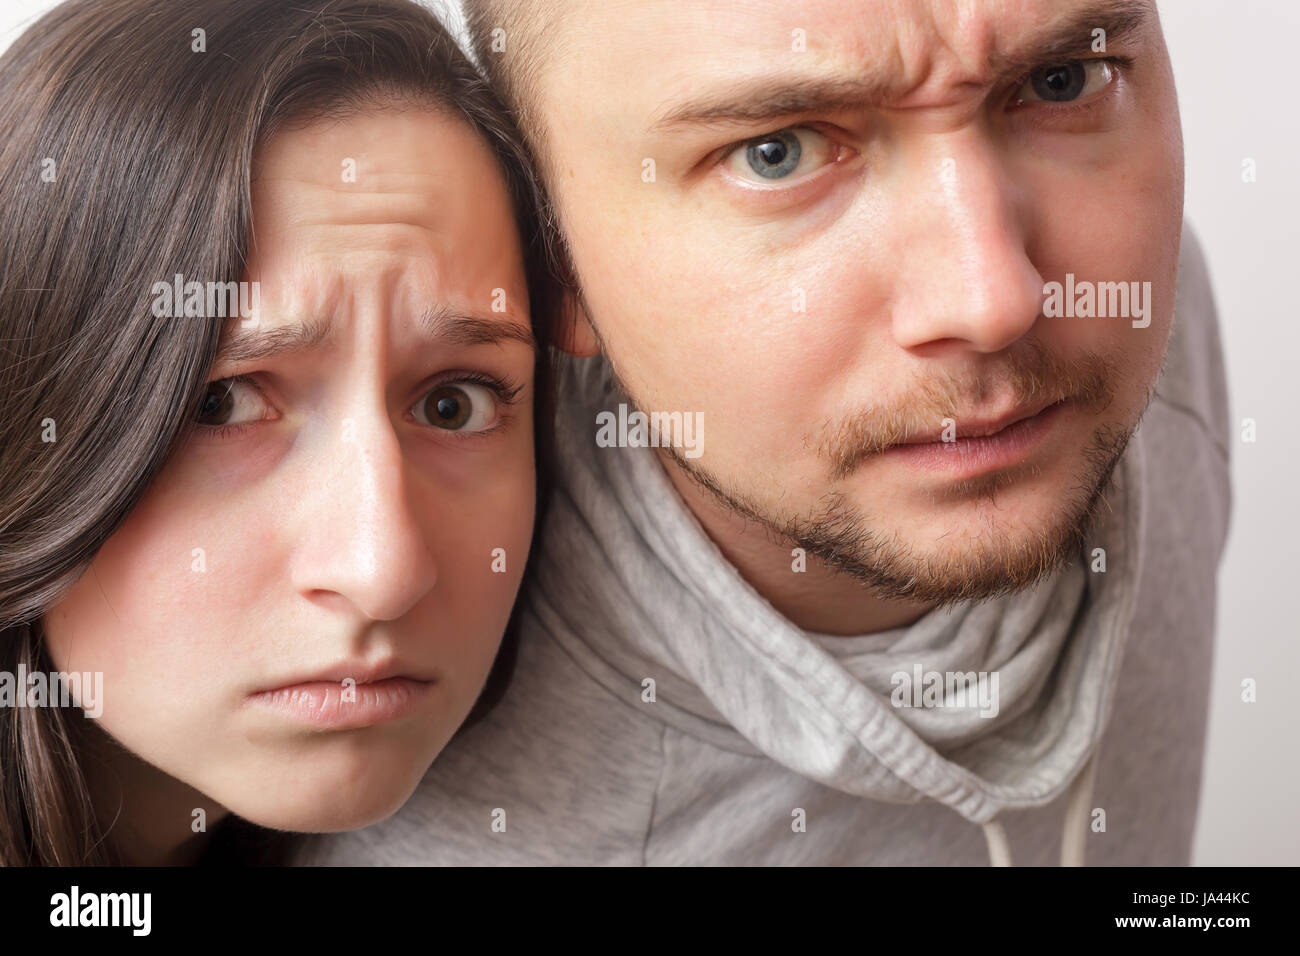 Young couple with dubious looks forward, wrinkling his face in disbelief. - Stock Image